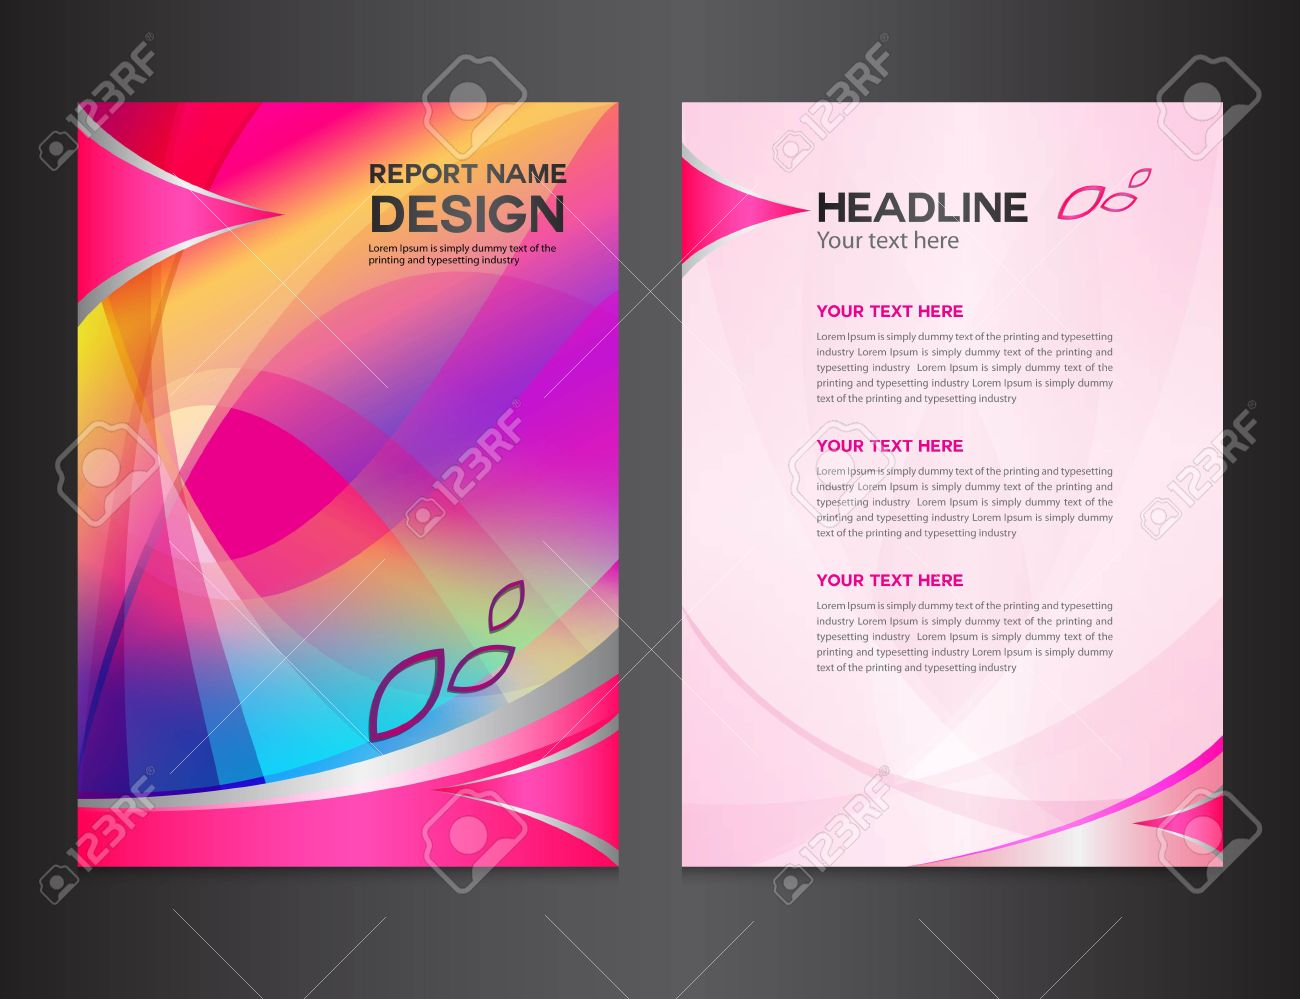 pink annual report vector illustration cover design brochure vector pink annual report vector illustration cover design brochure design template design graphic design vector illustration report cover